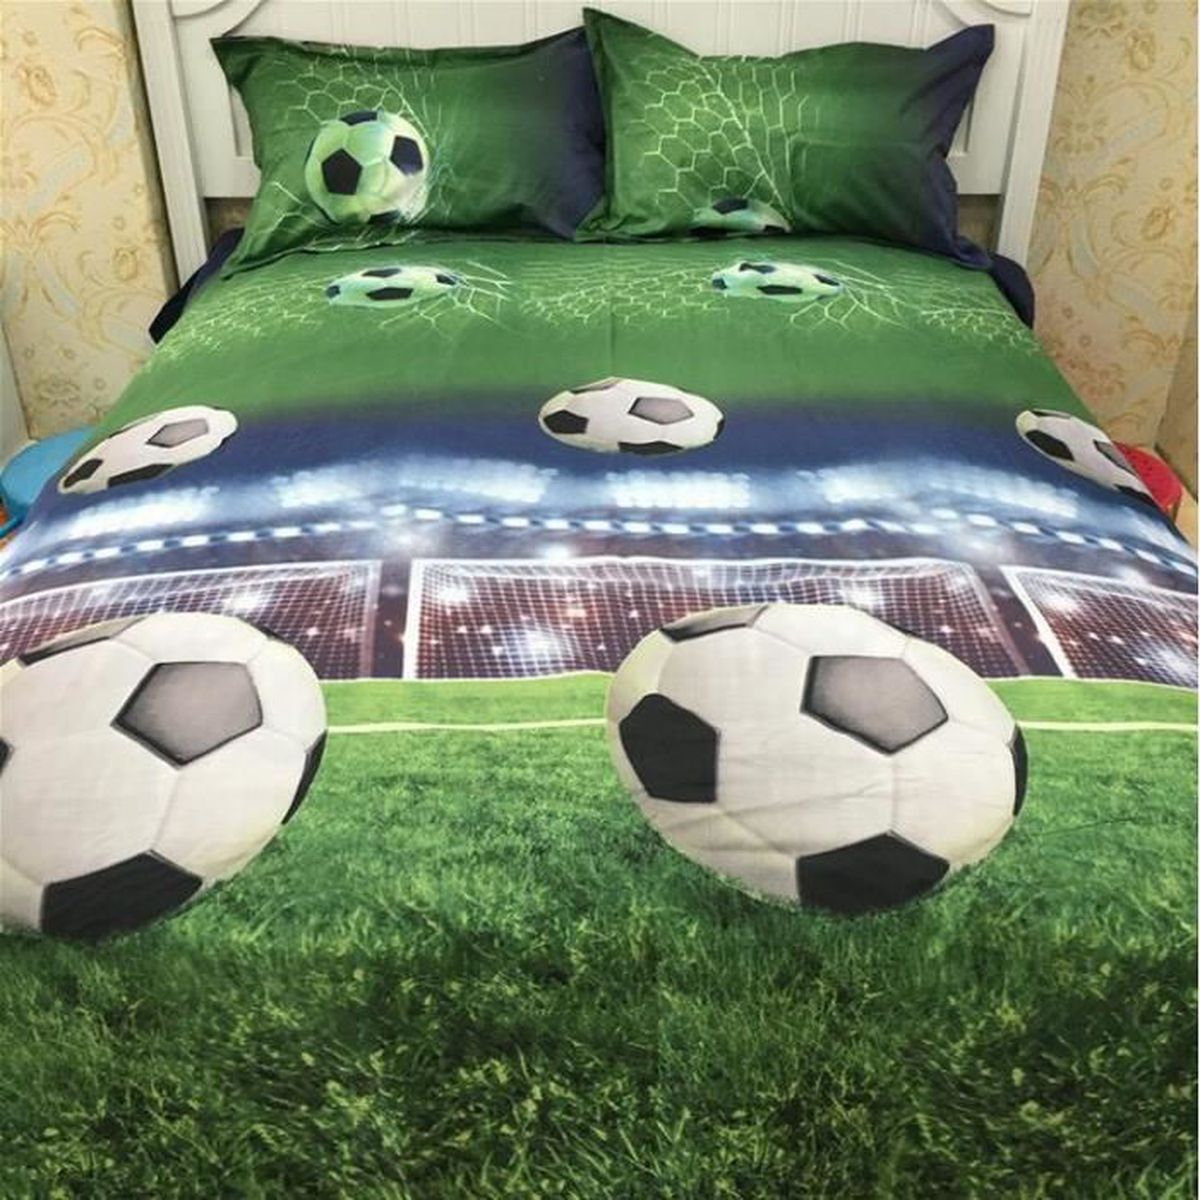 parure de lit football pour 2 personnes 3d effect. Black Bedroom Furniture Sets. Home Design Ideas